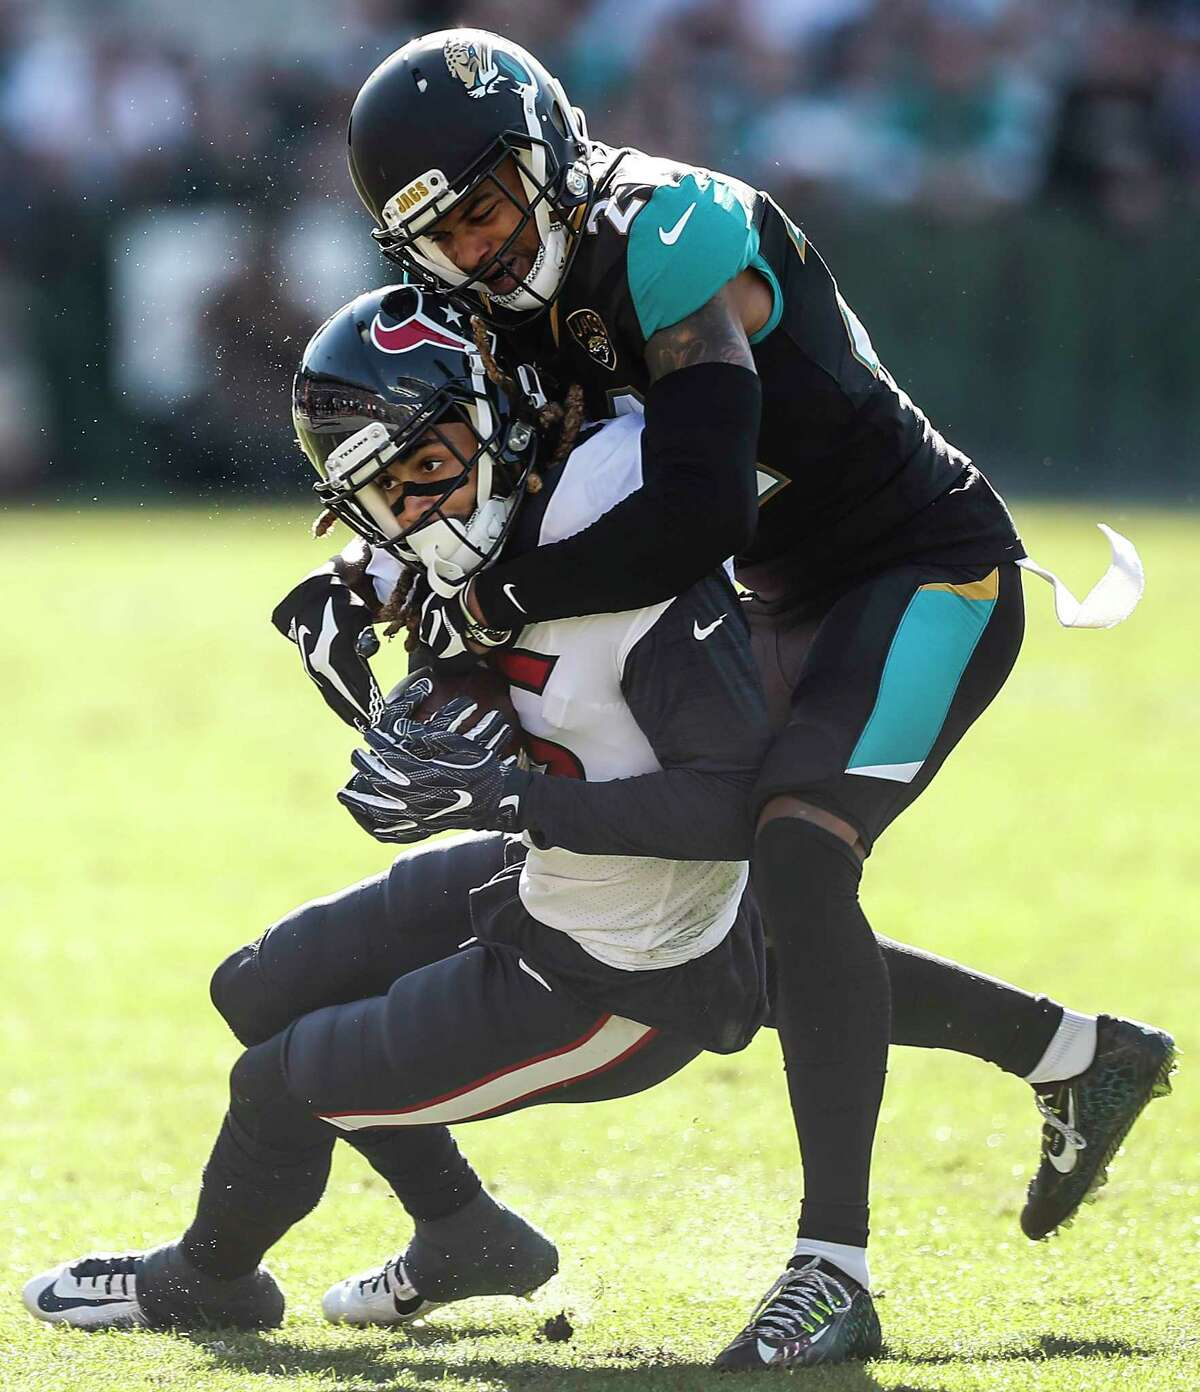 Jacksonville Jaguars cornerback A.J. Bouye (21) tackles Houston Texans wide receiver Will Fuller (15) during the second quarter of an NFL football game at EverBank Field on Sunday, Dec. 17, 2017, in Jacksonville. ( Brett Coomer / Houston Chronicle )